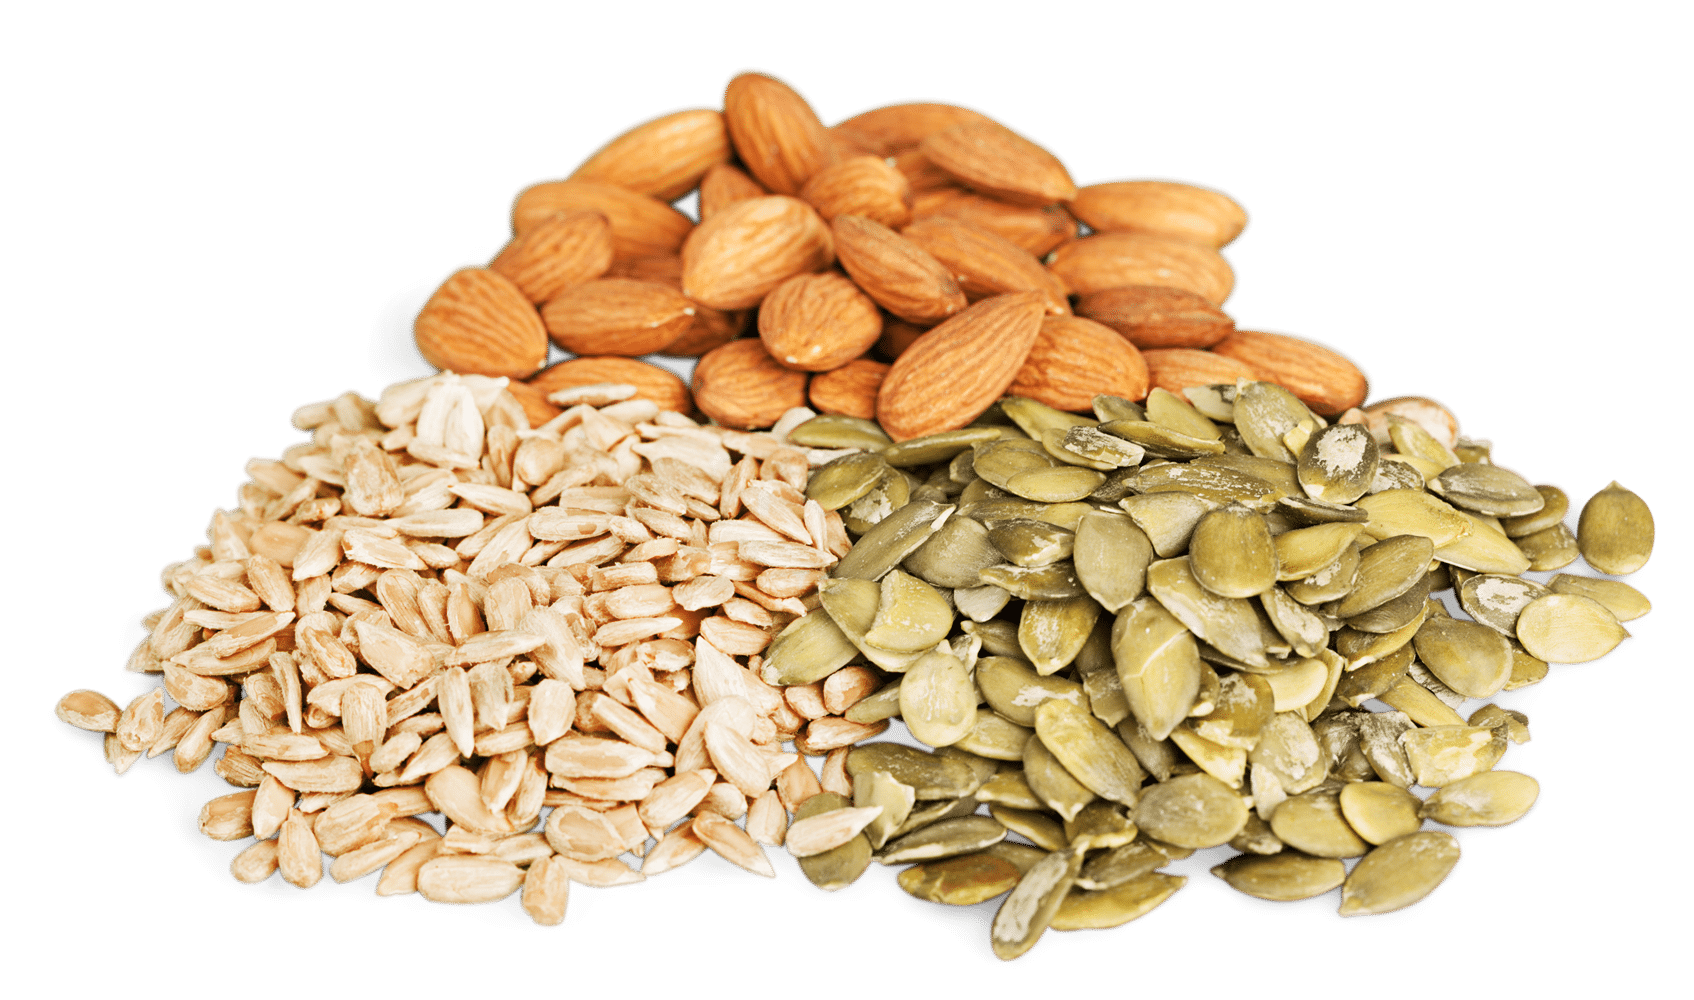 Sports Nutrition 101: The Best Sources of Protein | TheHealthBeat.com